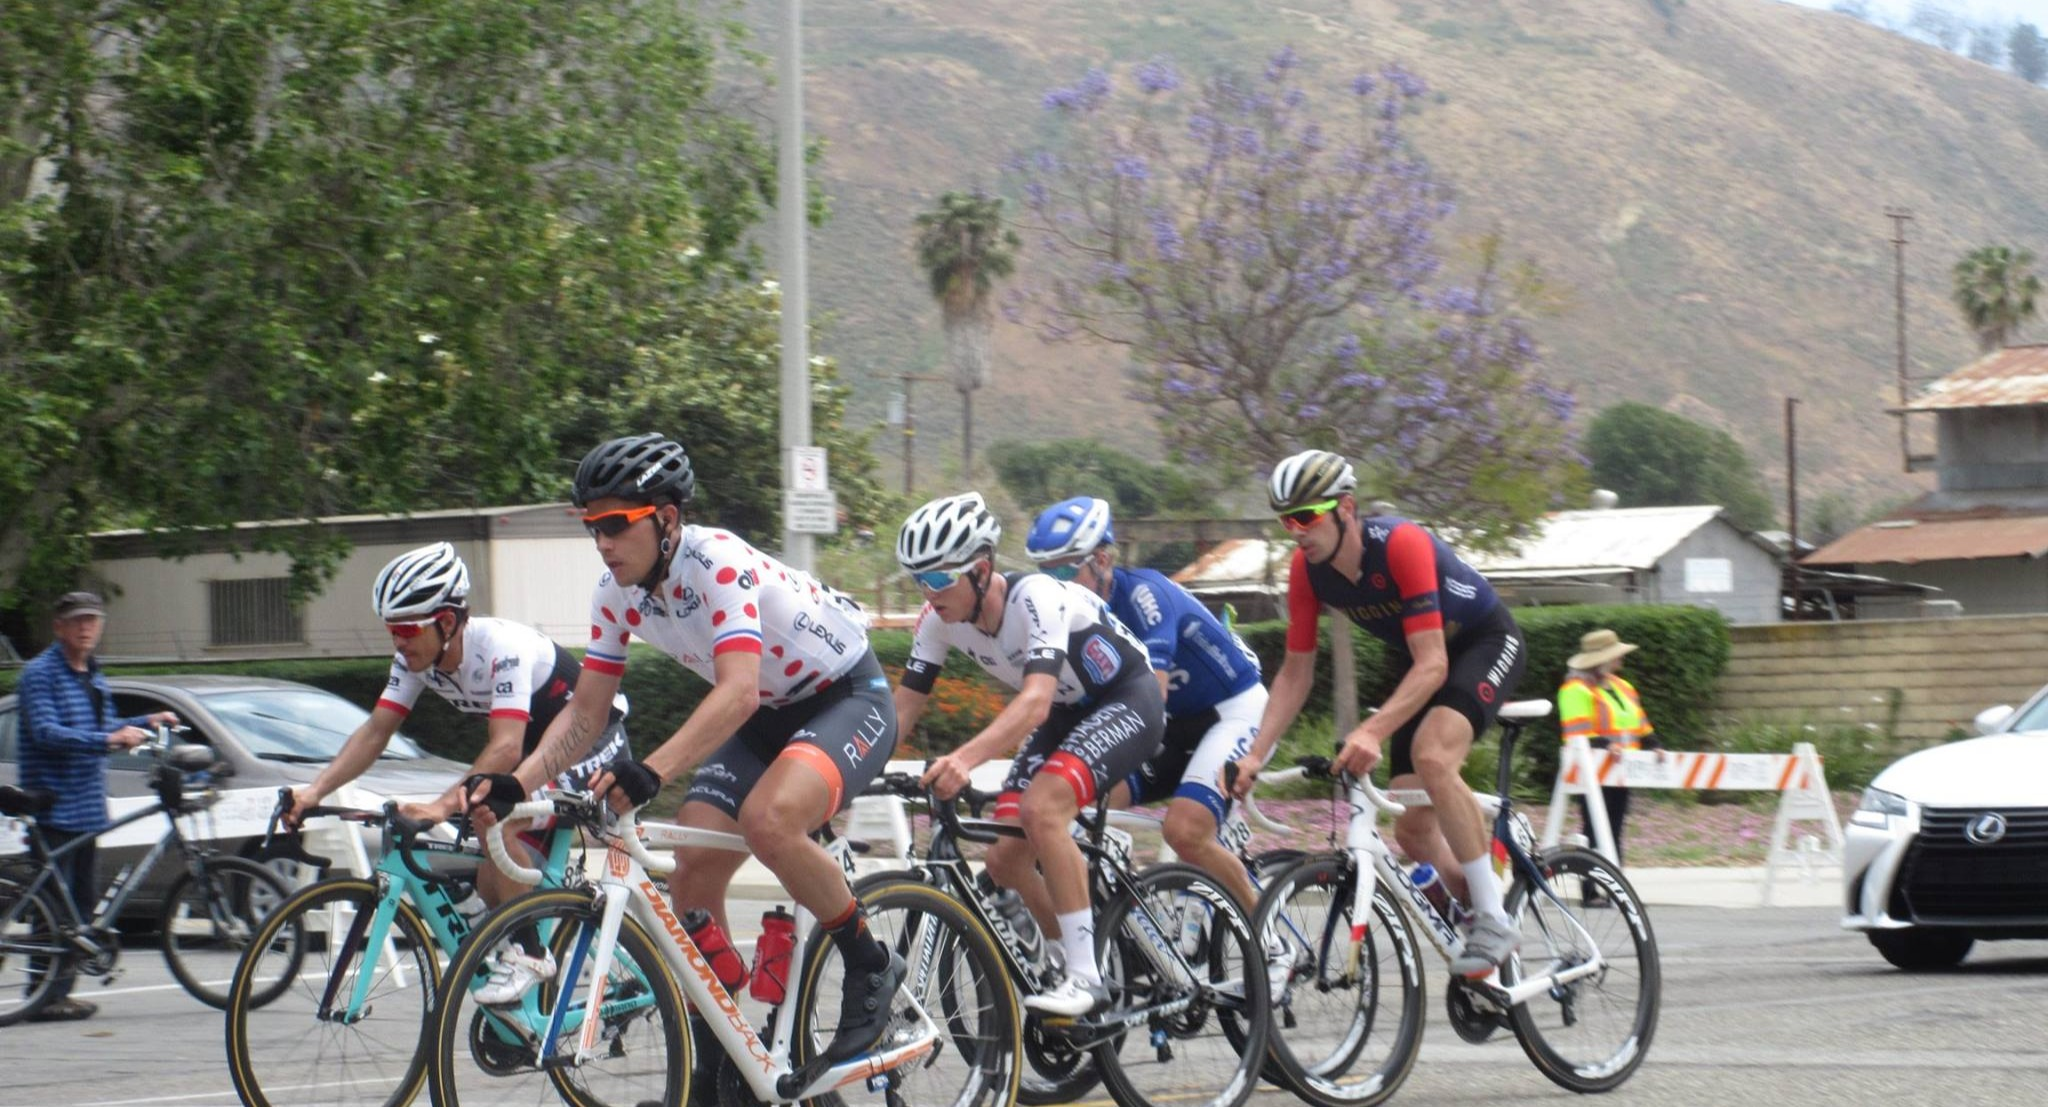 A pack of AmGEN TOC cyclists racing on the streets of Ventura